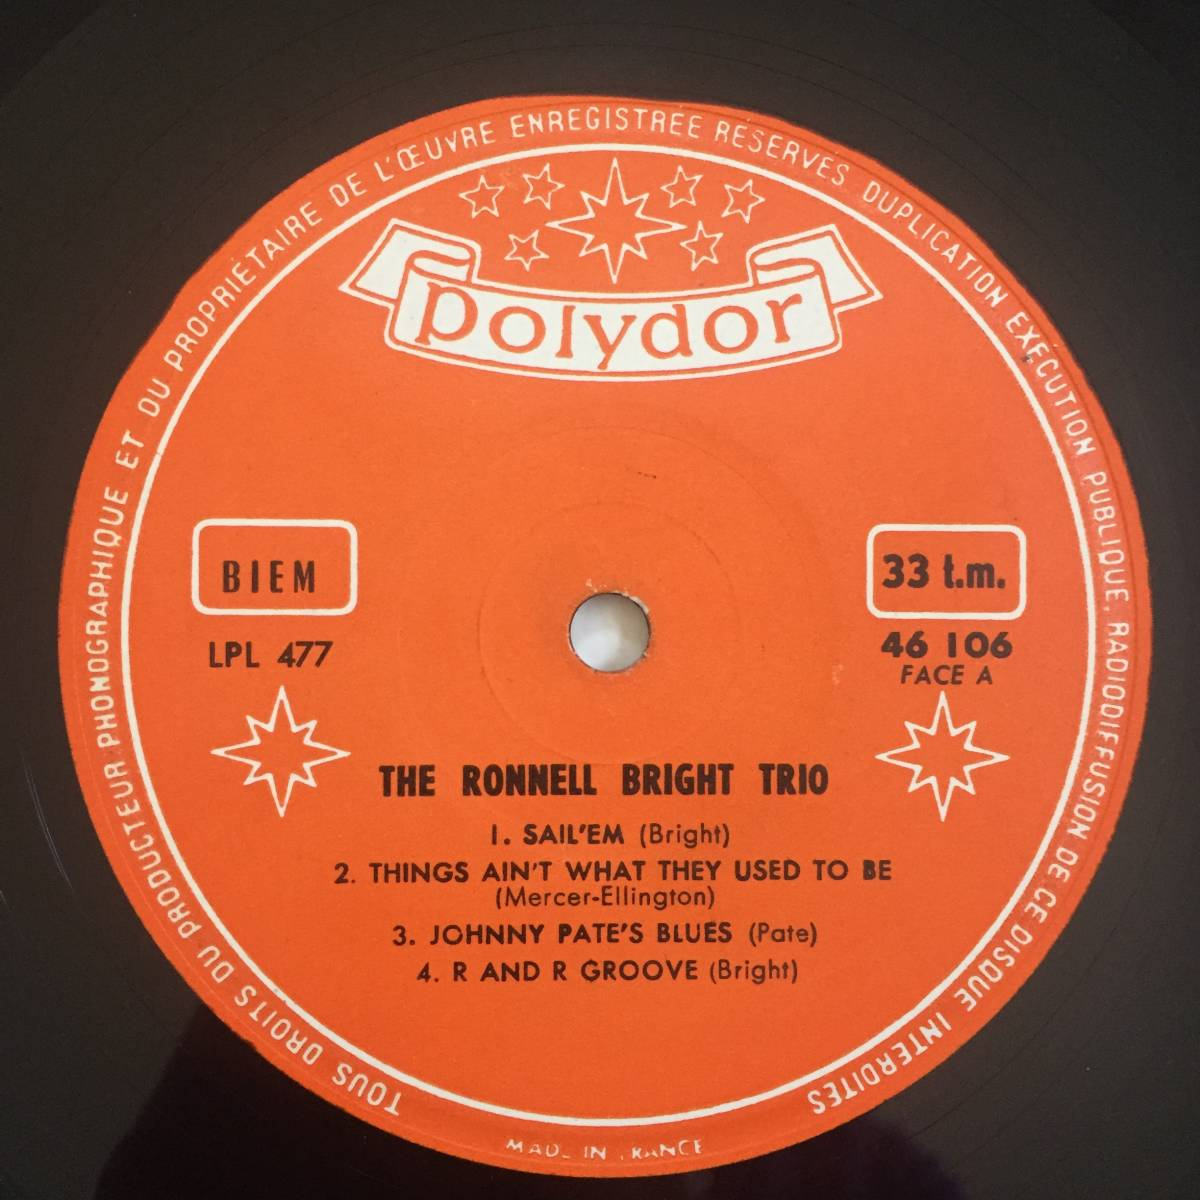 【激レア/France Polydor Original】The Ronnell Bright Trio(Polydor 46 106)_画像3